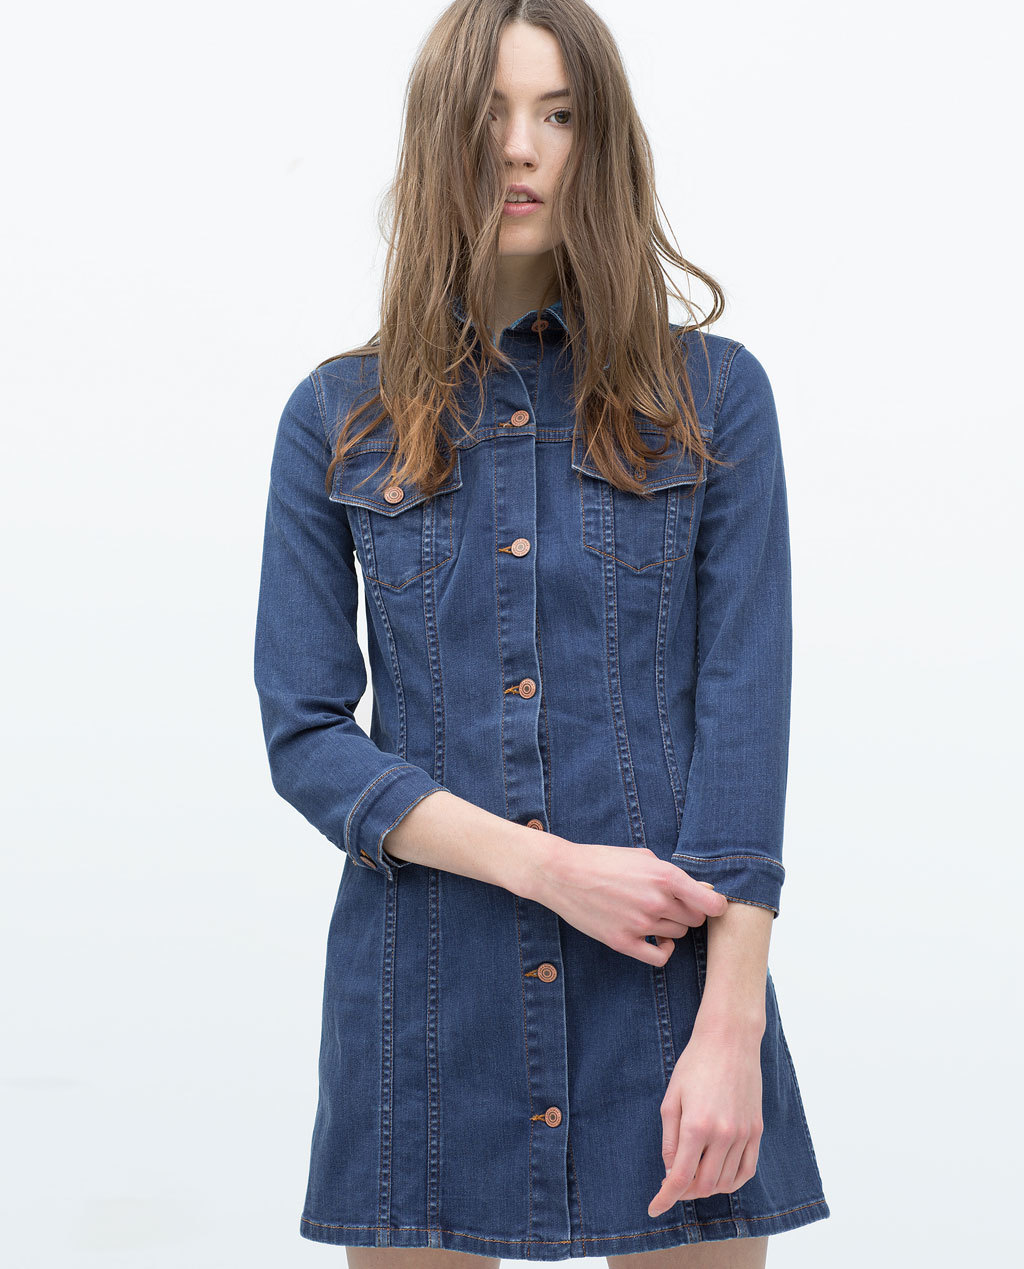 Denim Dress - style: shirt; length: mini; neckline: shirt collar/peter pan/zip with opening; pattern: plain; bust detail: subtle bust detail; predominant colour: denim; occasions: casual, creative work; fit: soft a-line; fibres: cotton - stretch; sleeve length: 3/4 length; sleeve style: standard; texture group: denim; pattern type: fabric; season: s/s 2015; wardrobe: basic